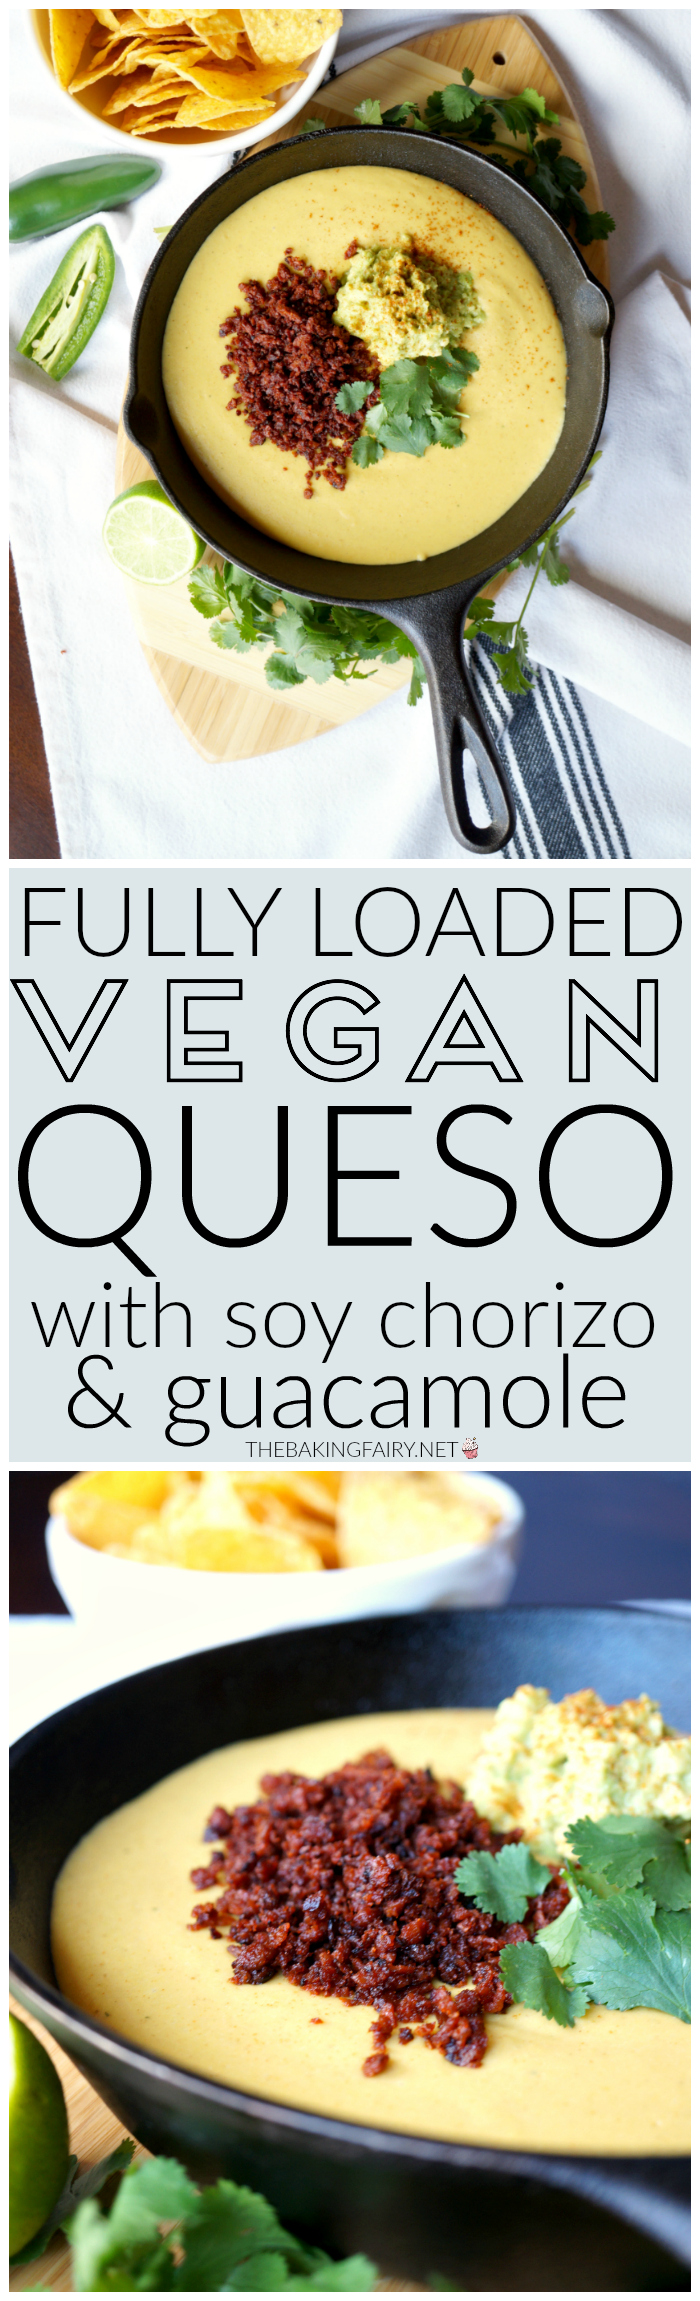 fully loaded vegan queso {nut-free} | The Baking Fairy